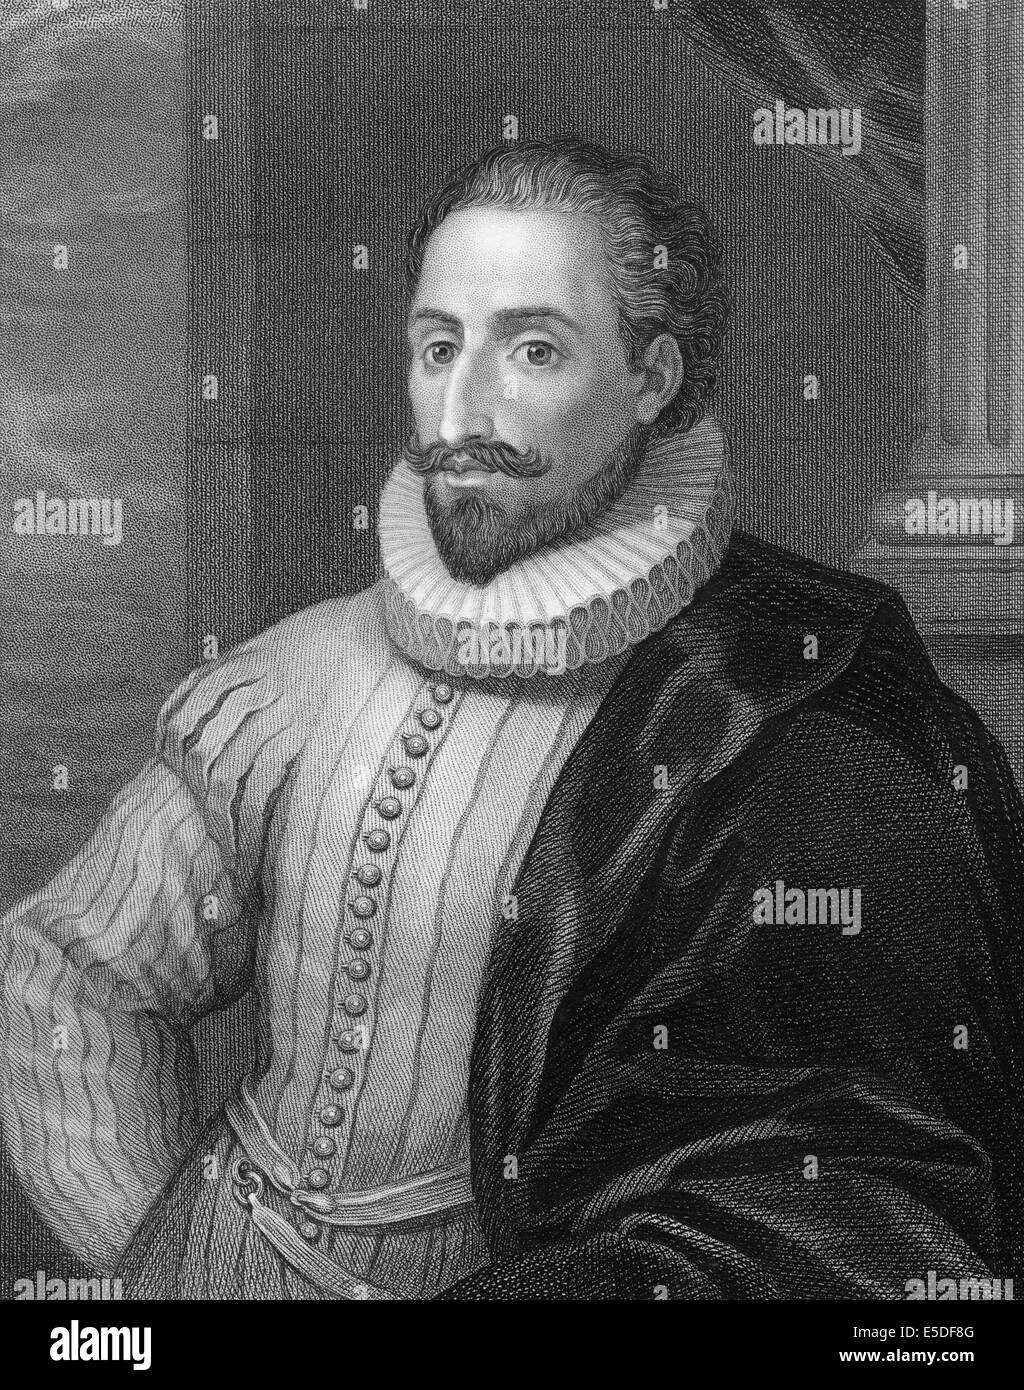 Steel engraving, c. 1860, Miguel de Cervantes Saavedra, 1547-1616, a  Spanish writer, - Stock Image